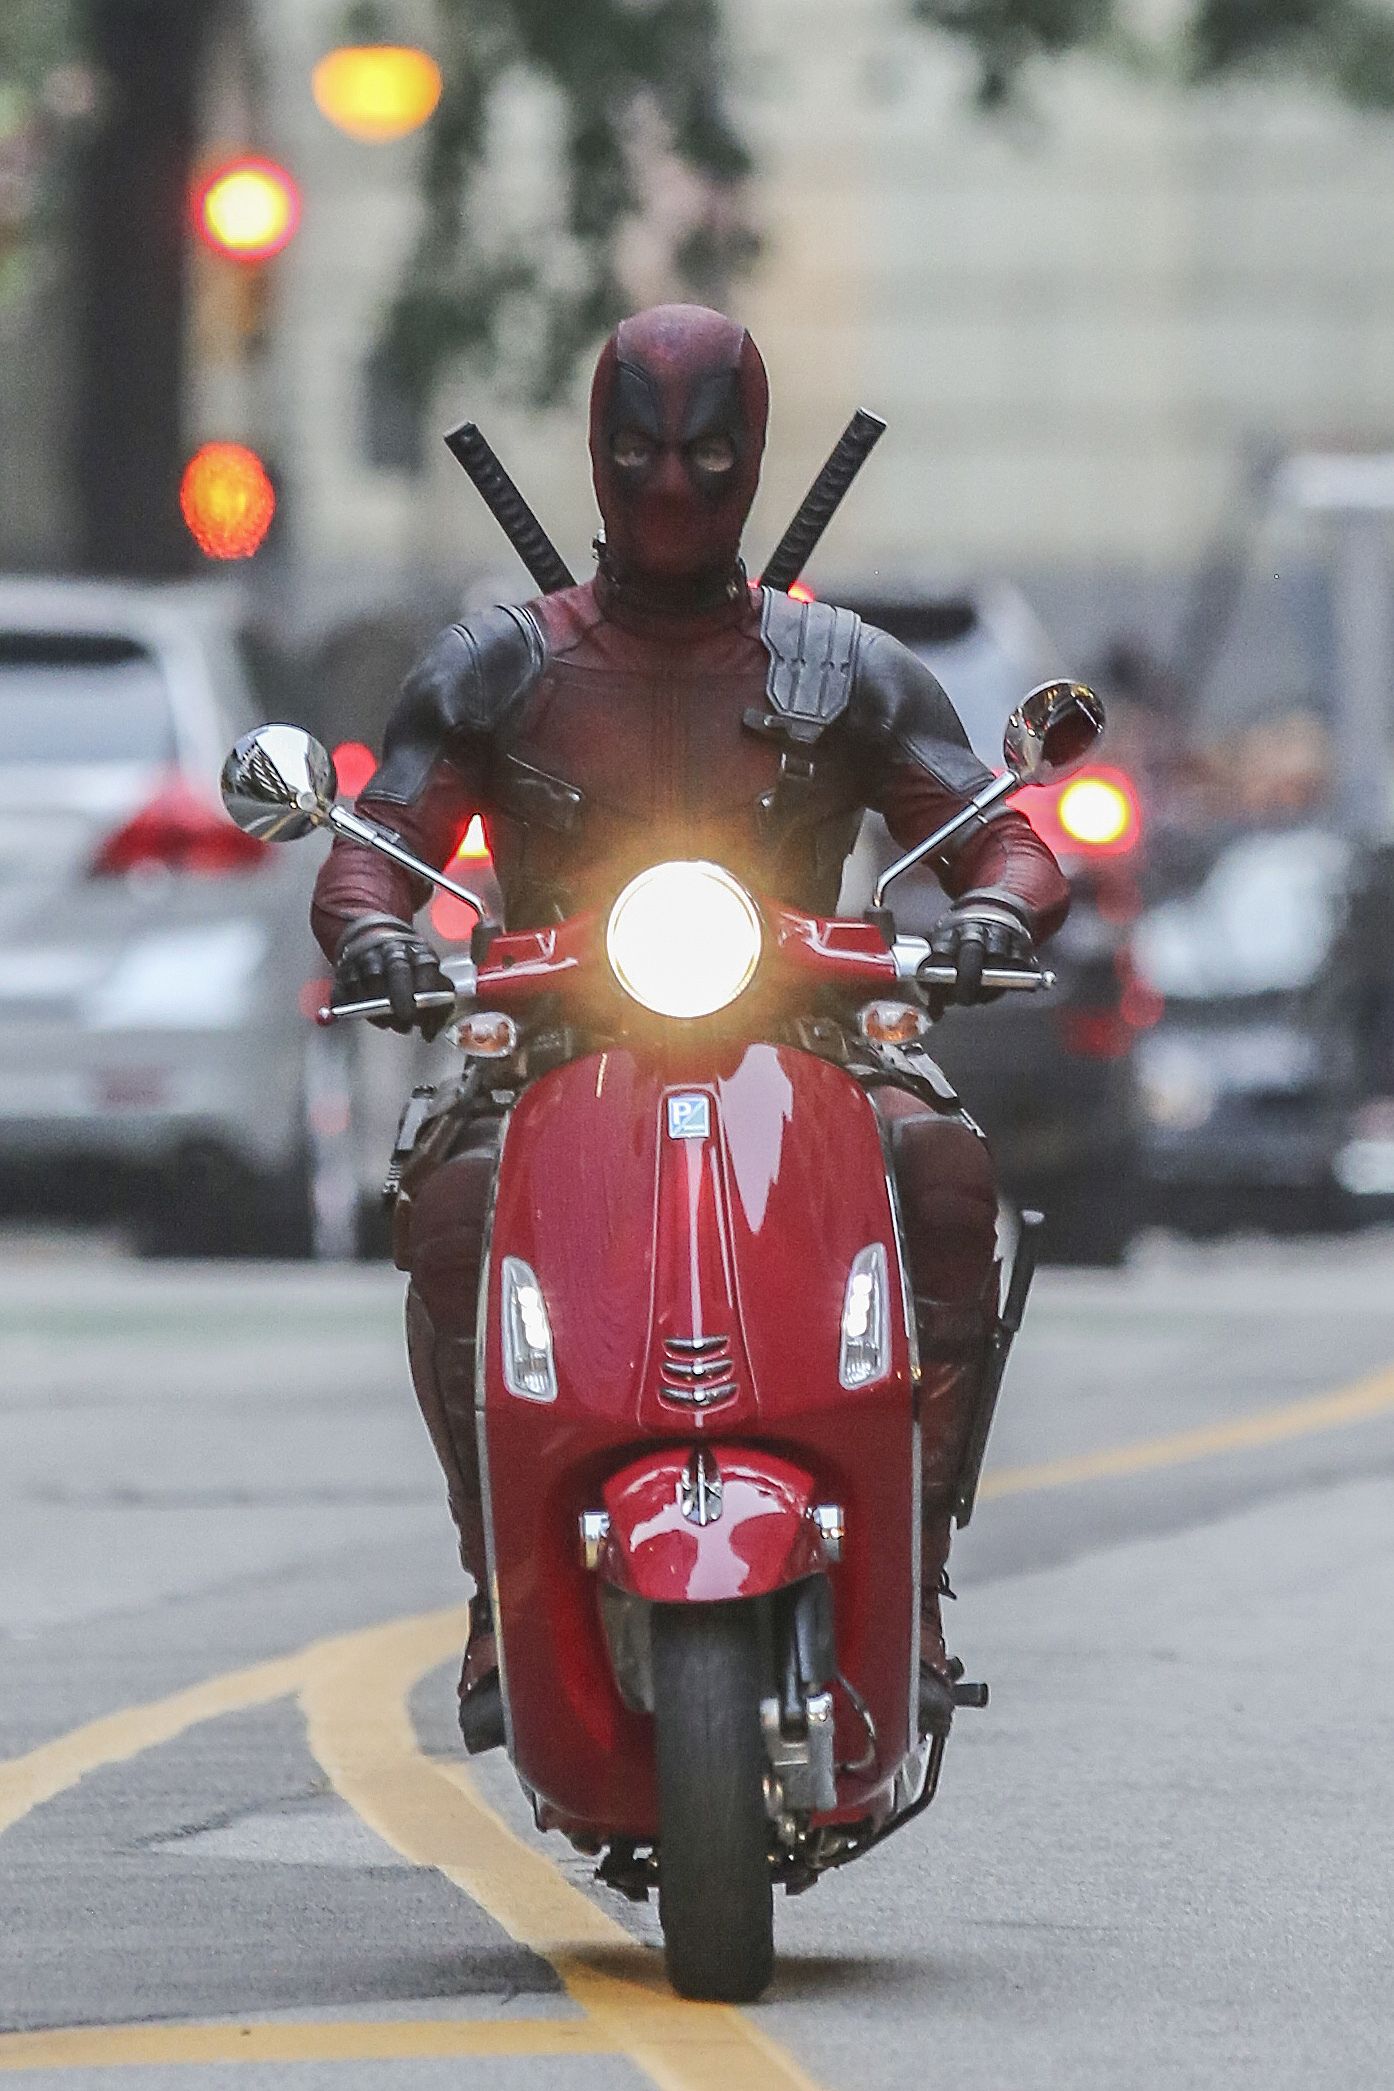 Ryan Reynolds rides a red Vespa in Vancouver on Aug. 9, 2017.